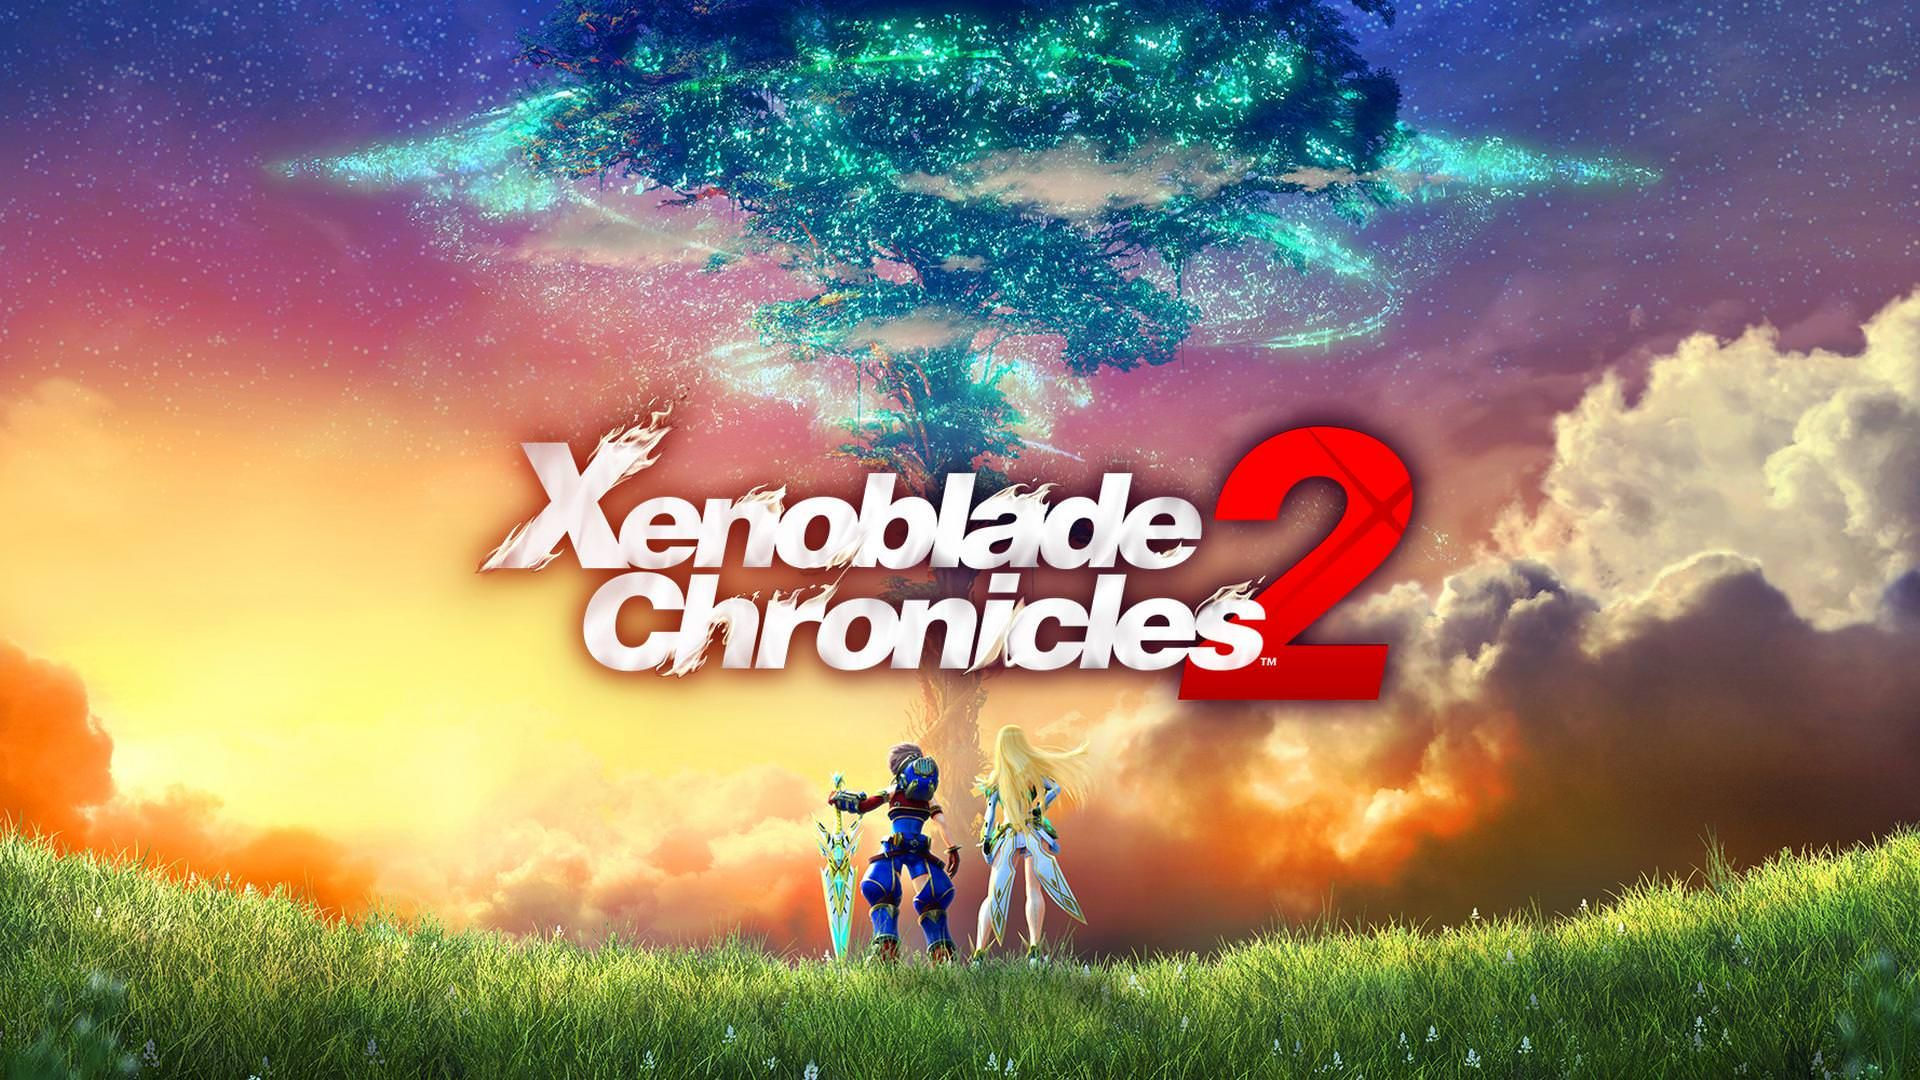 Image Result For Xenoblade Chronicles 2 Box Art Xenoblade